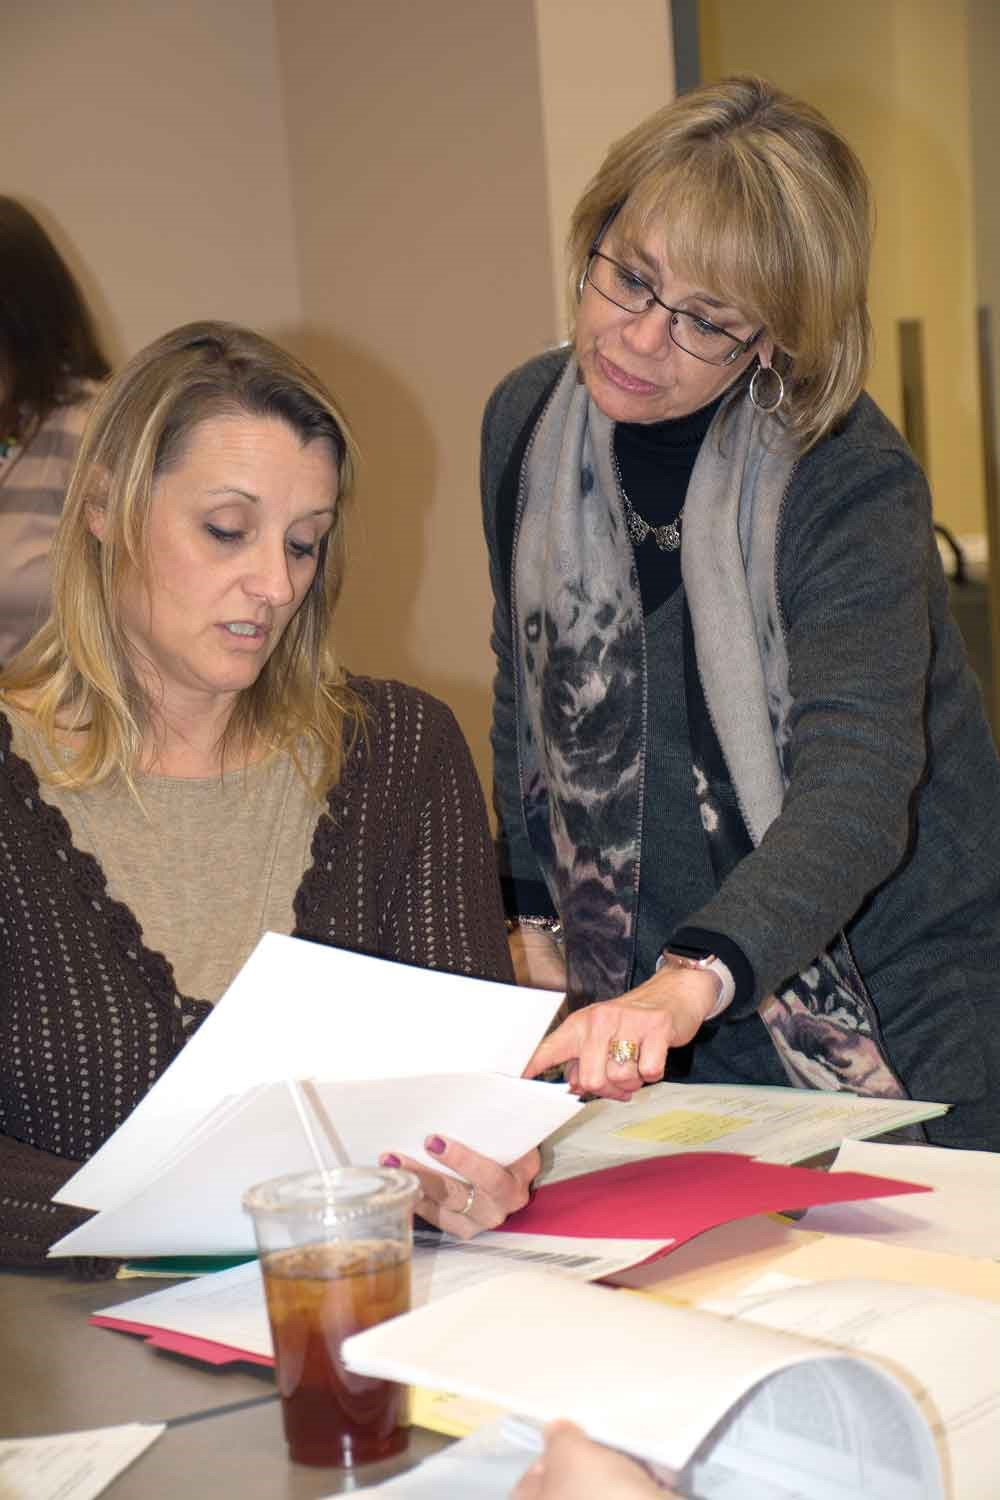 Tumolo-Wash works with Oldham County Schools' speech language pathologist Lori Pyle during a training on meeting Medicaid records-keeping rules. KSBA provides technical guidance for directors of special education and support staff who must file the reports within those rules for districts to recoup their expenses.